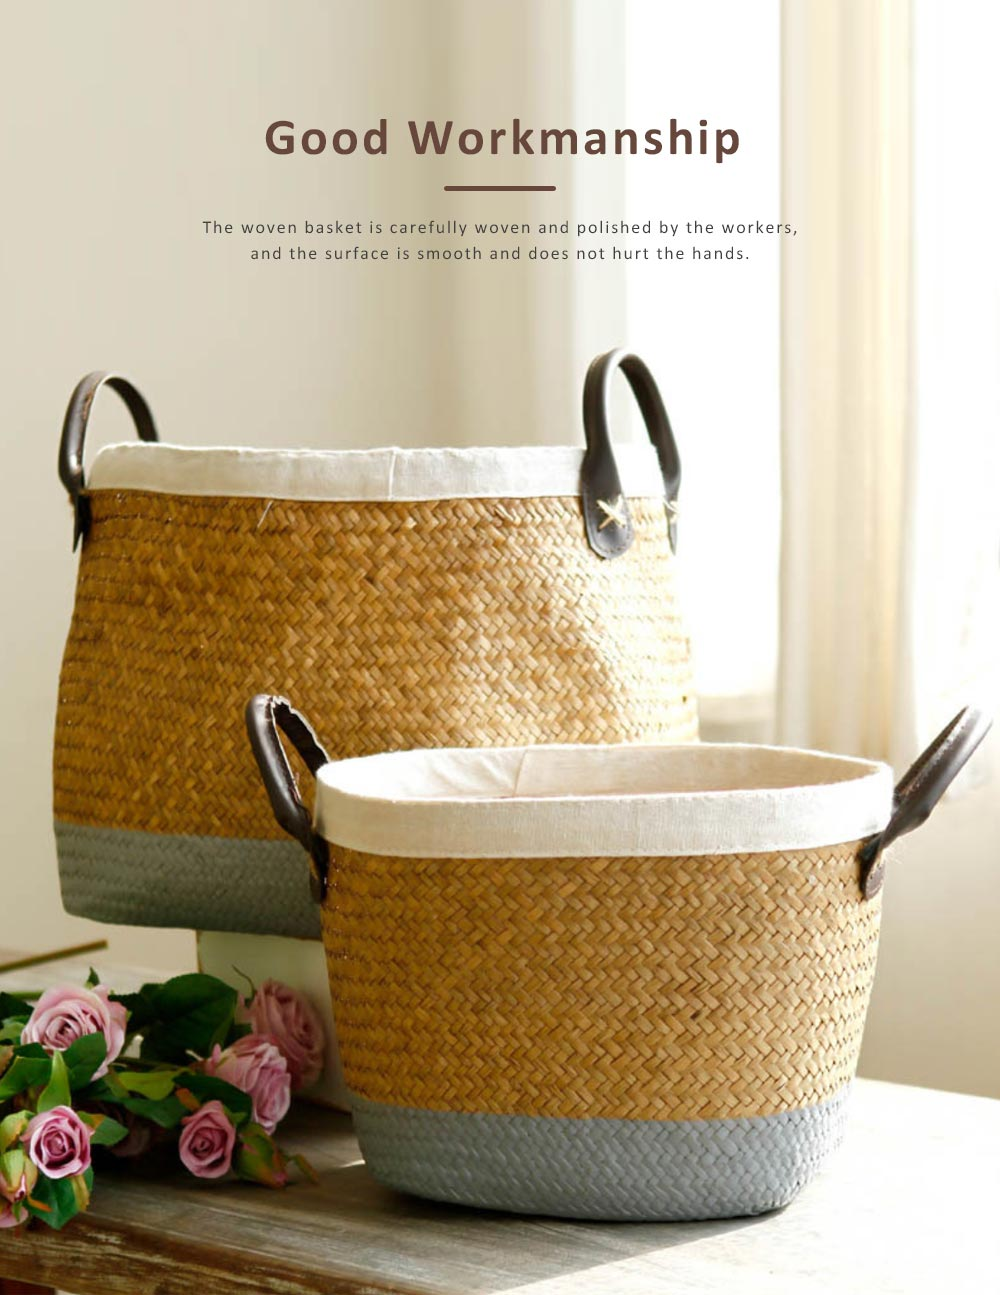 Handmade Woven Basket Large Capacity Home Toys Storage Bag Shopping Bag Fashion Home Flower Basket Decor with Leather Handle 2